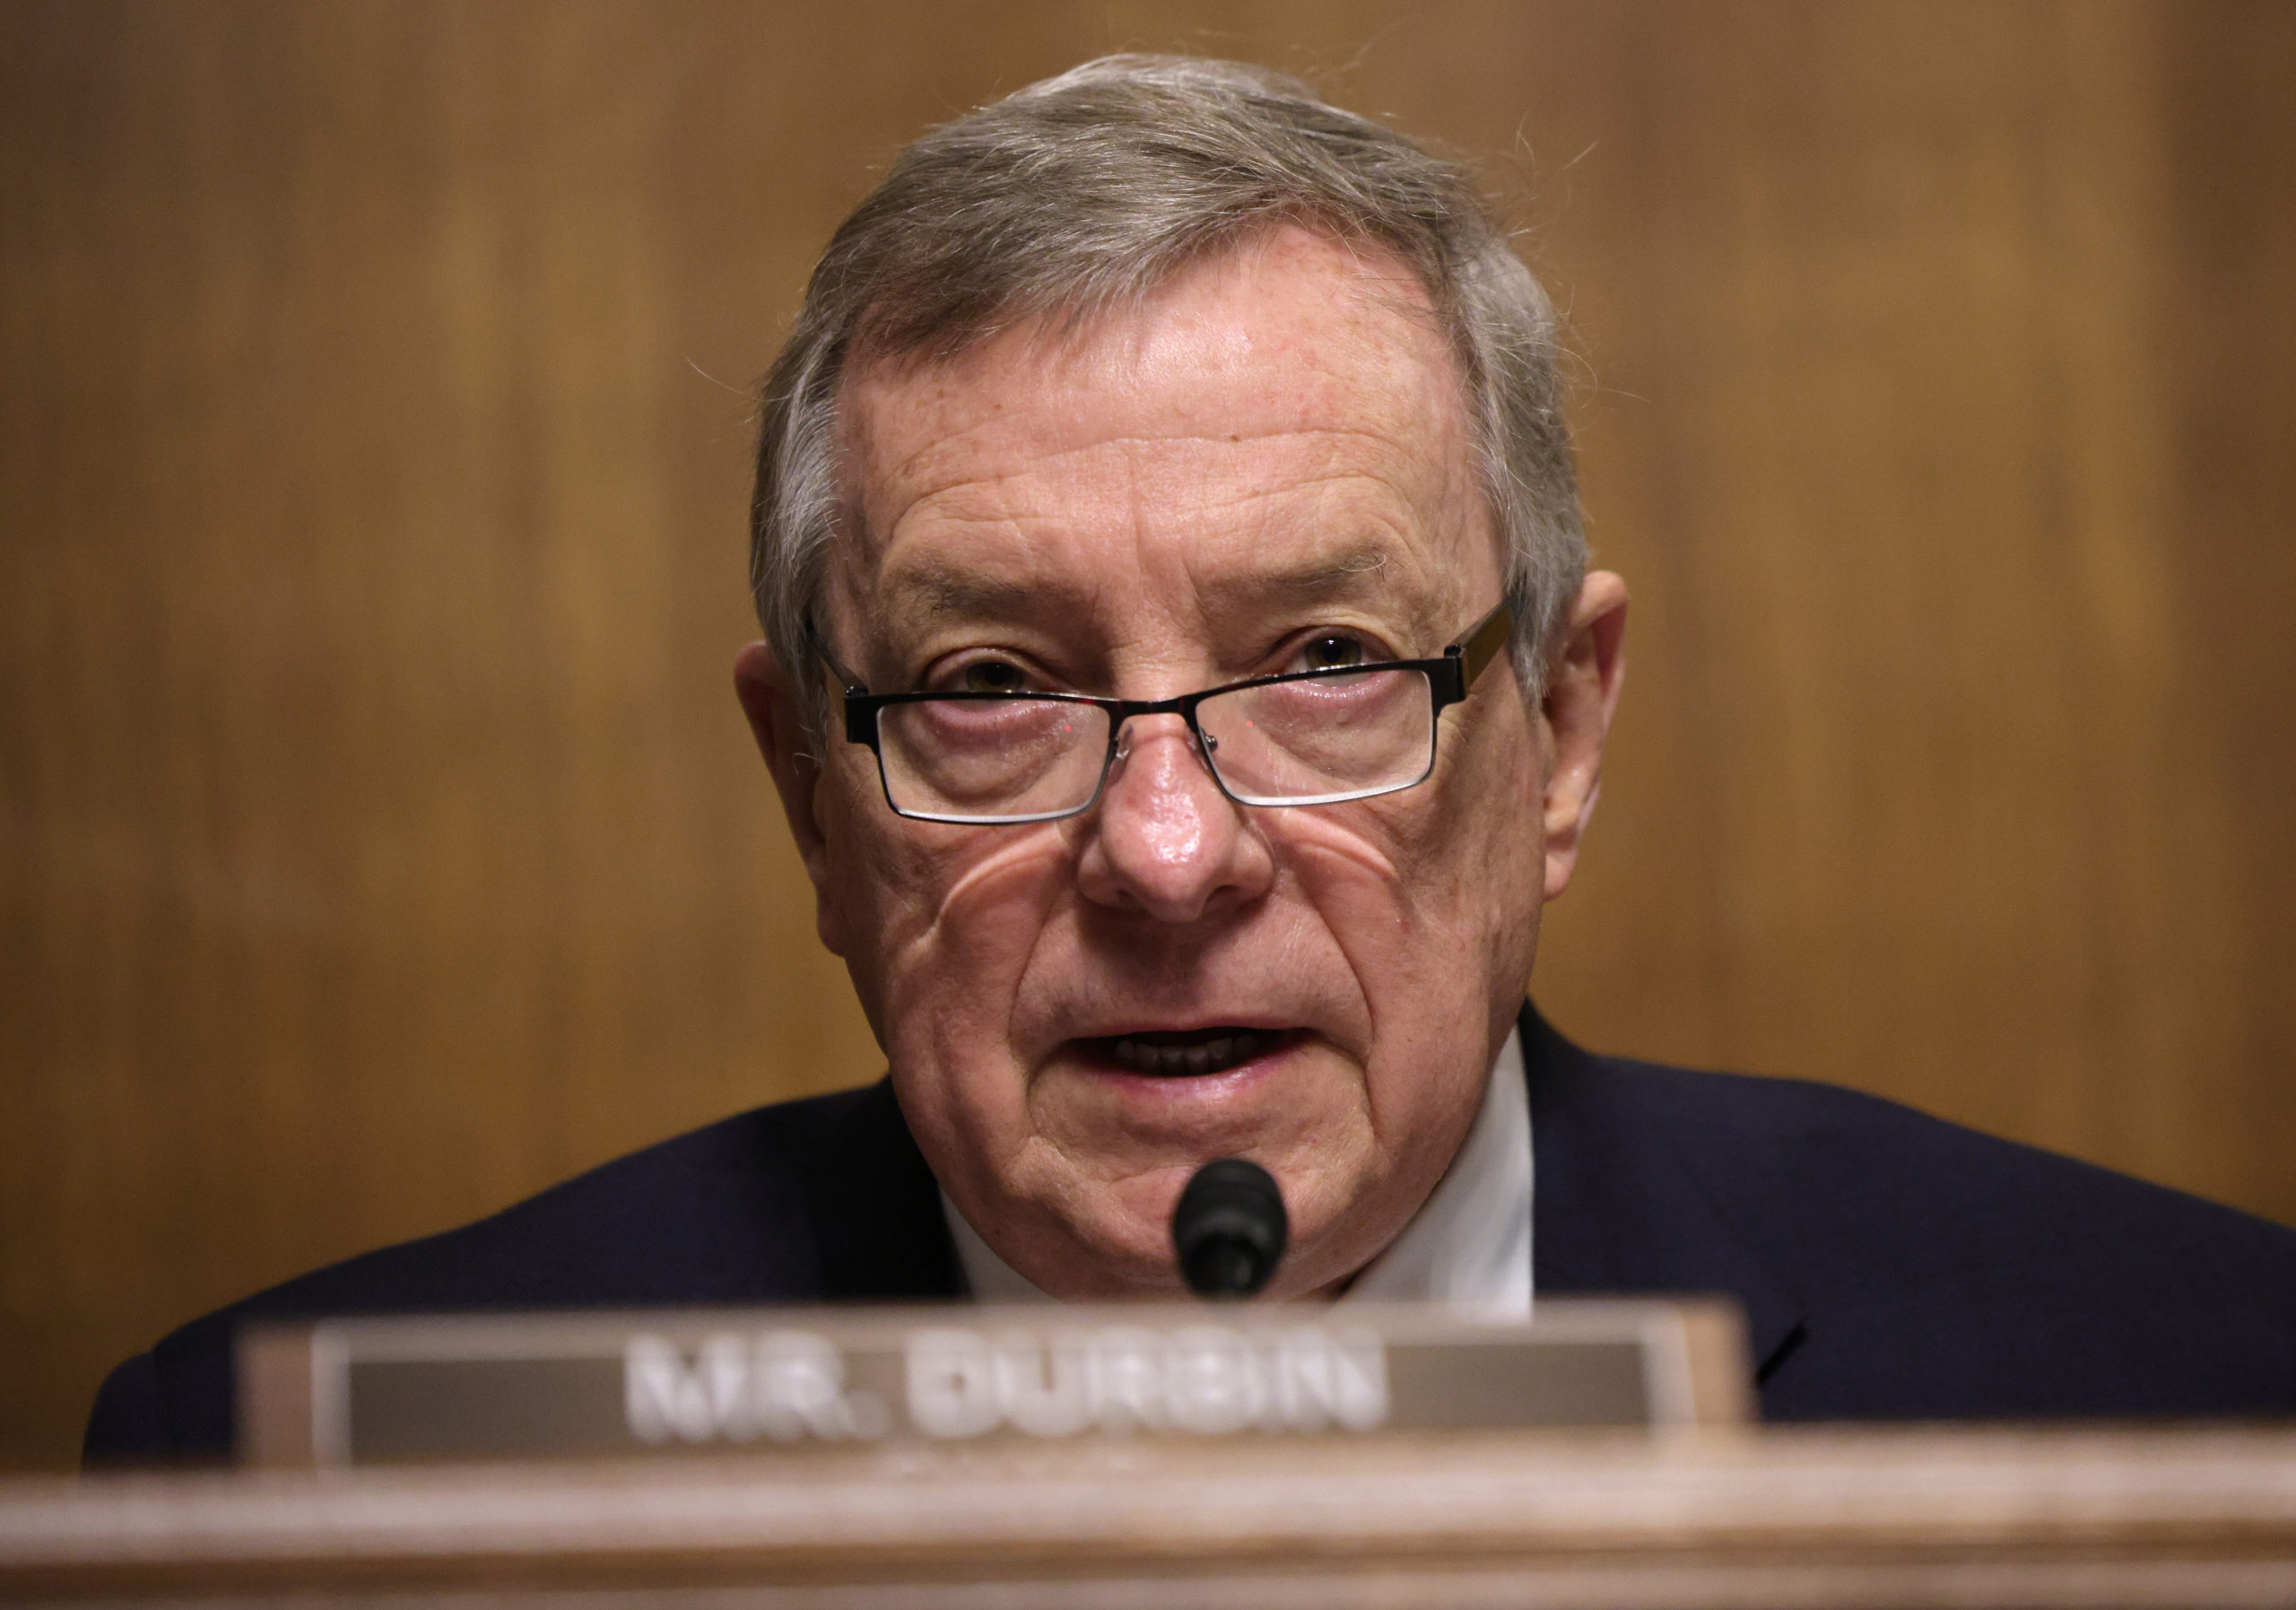 Committee Chair Sen. Dick Durbin (D-IL) speaks during a Senate Judiciary Committee hearing March 17, 2021 in Washington, DC. (Win McNamee/Getty Images)